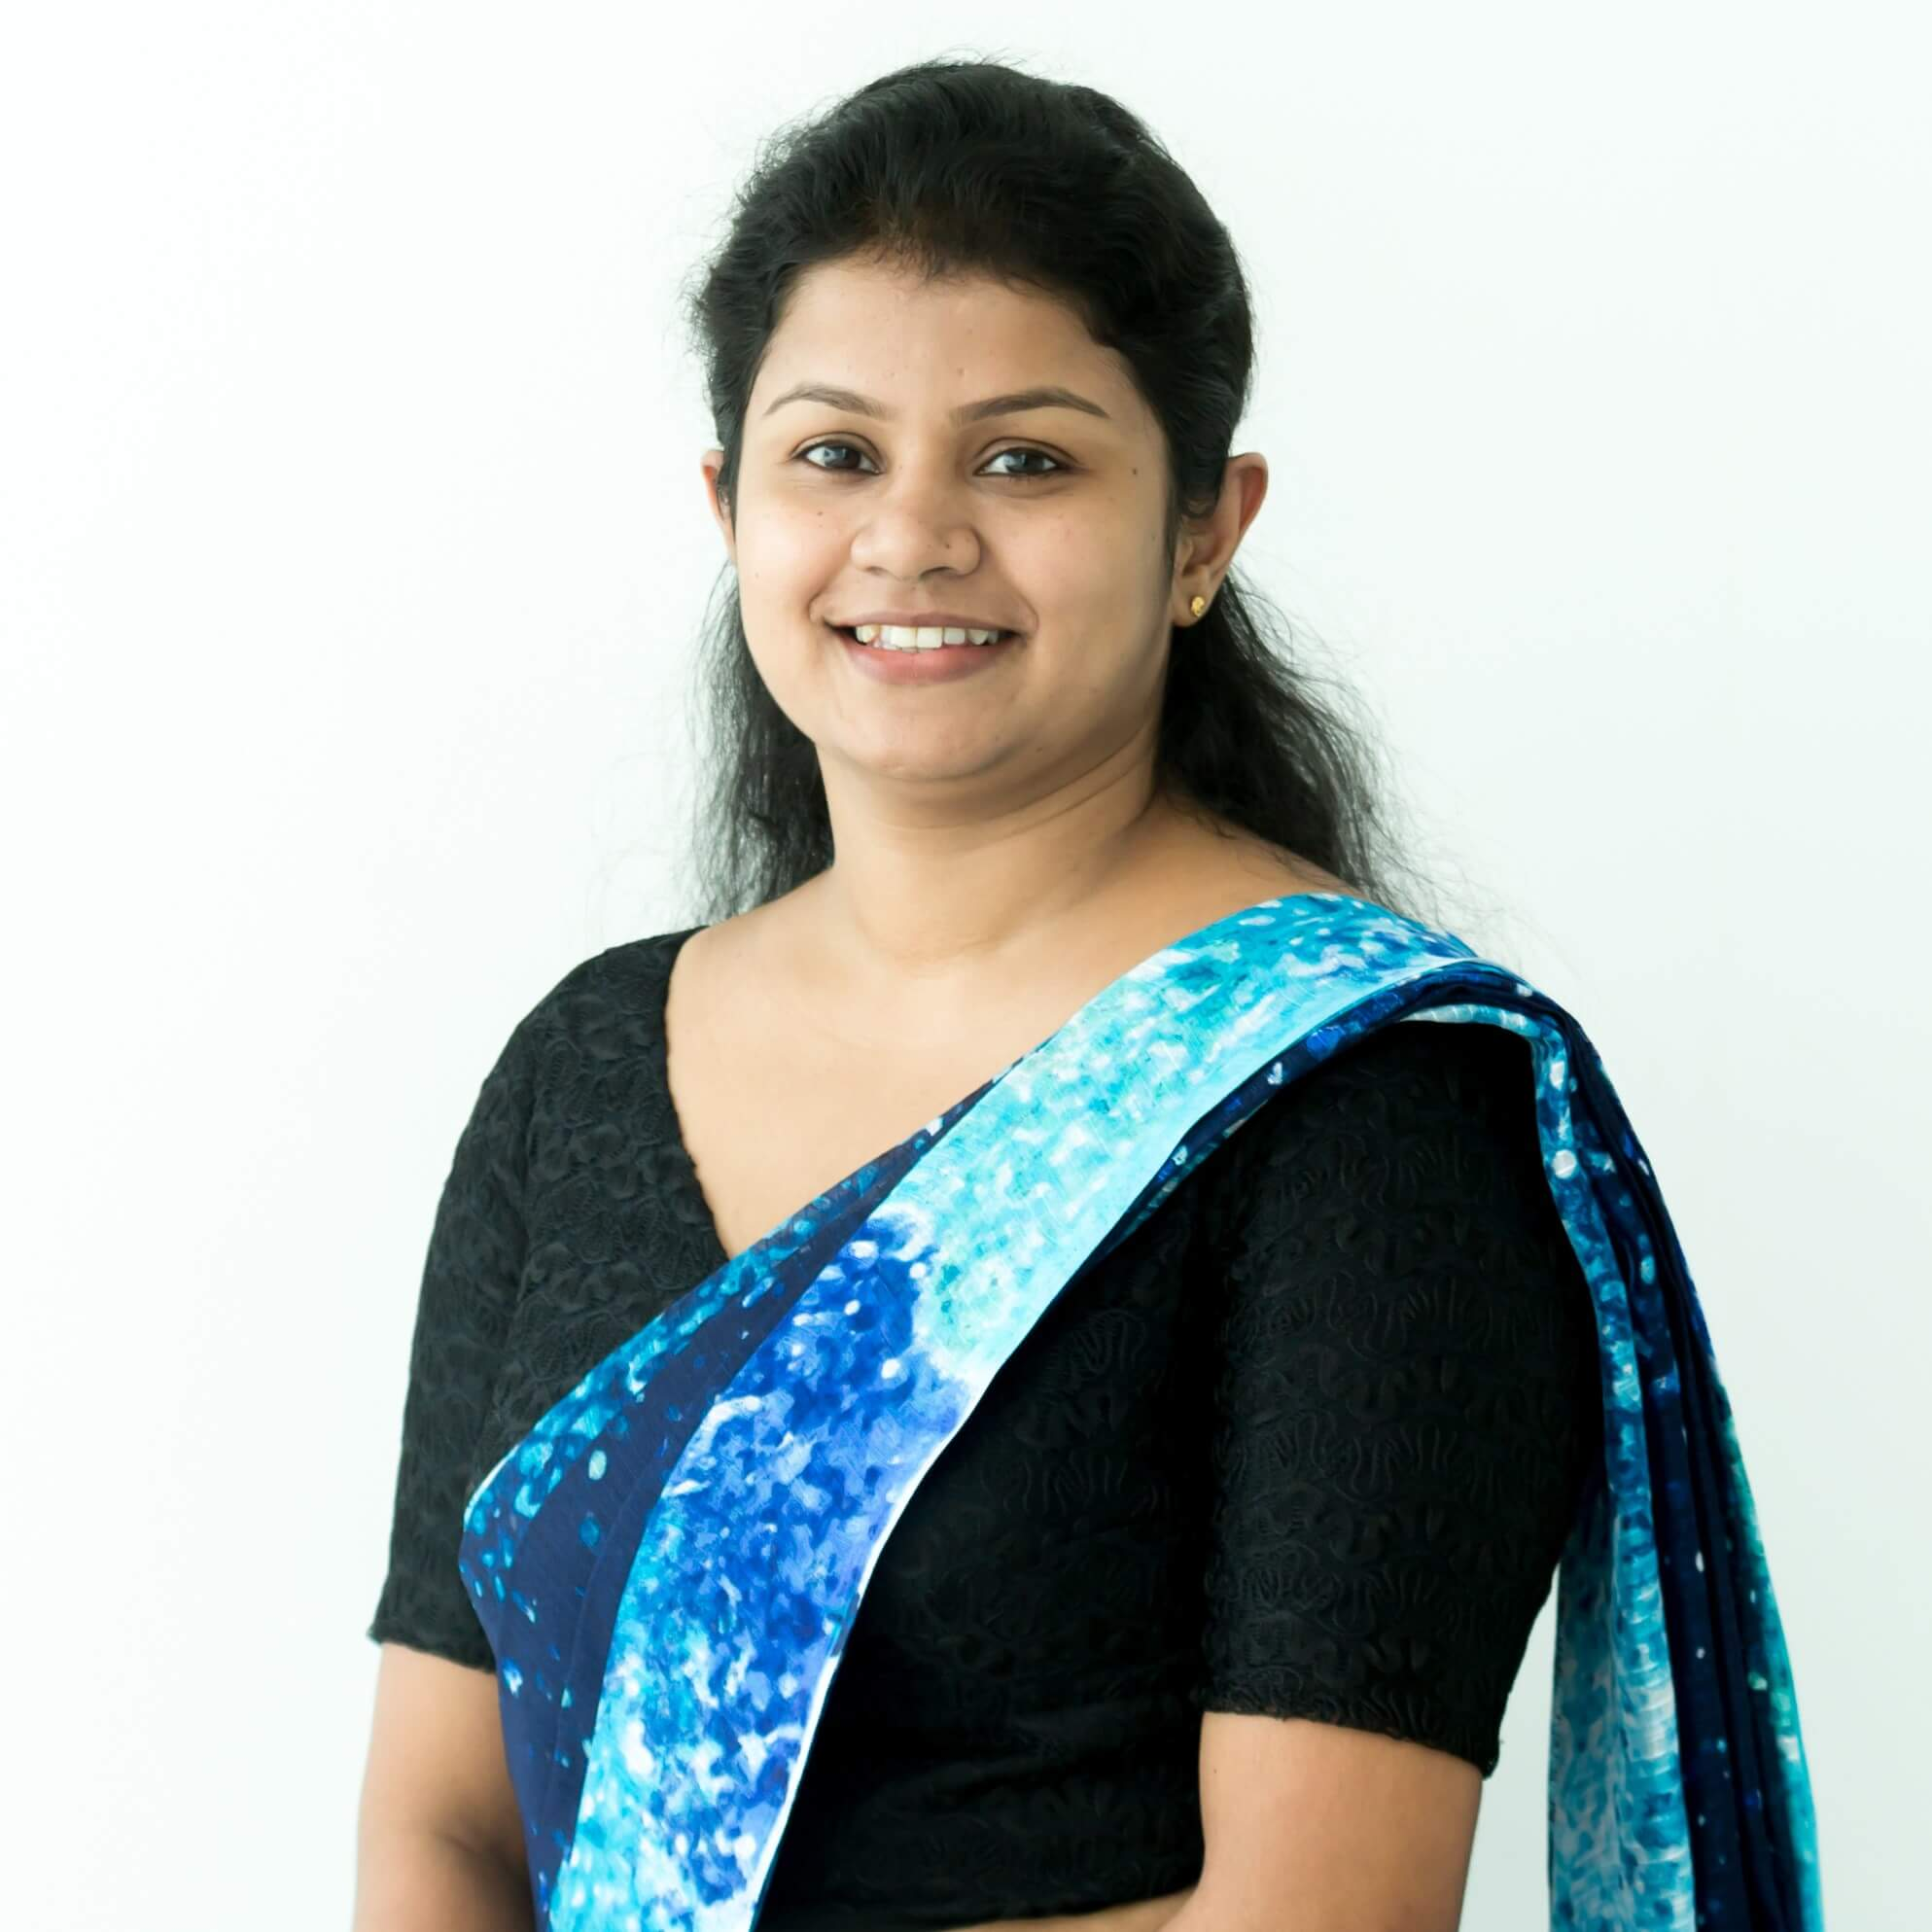 Ms. Manoja Weerasekera